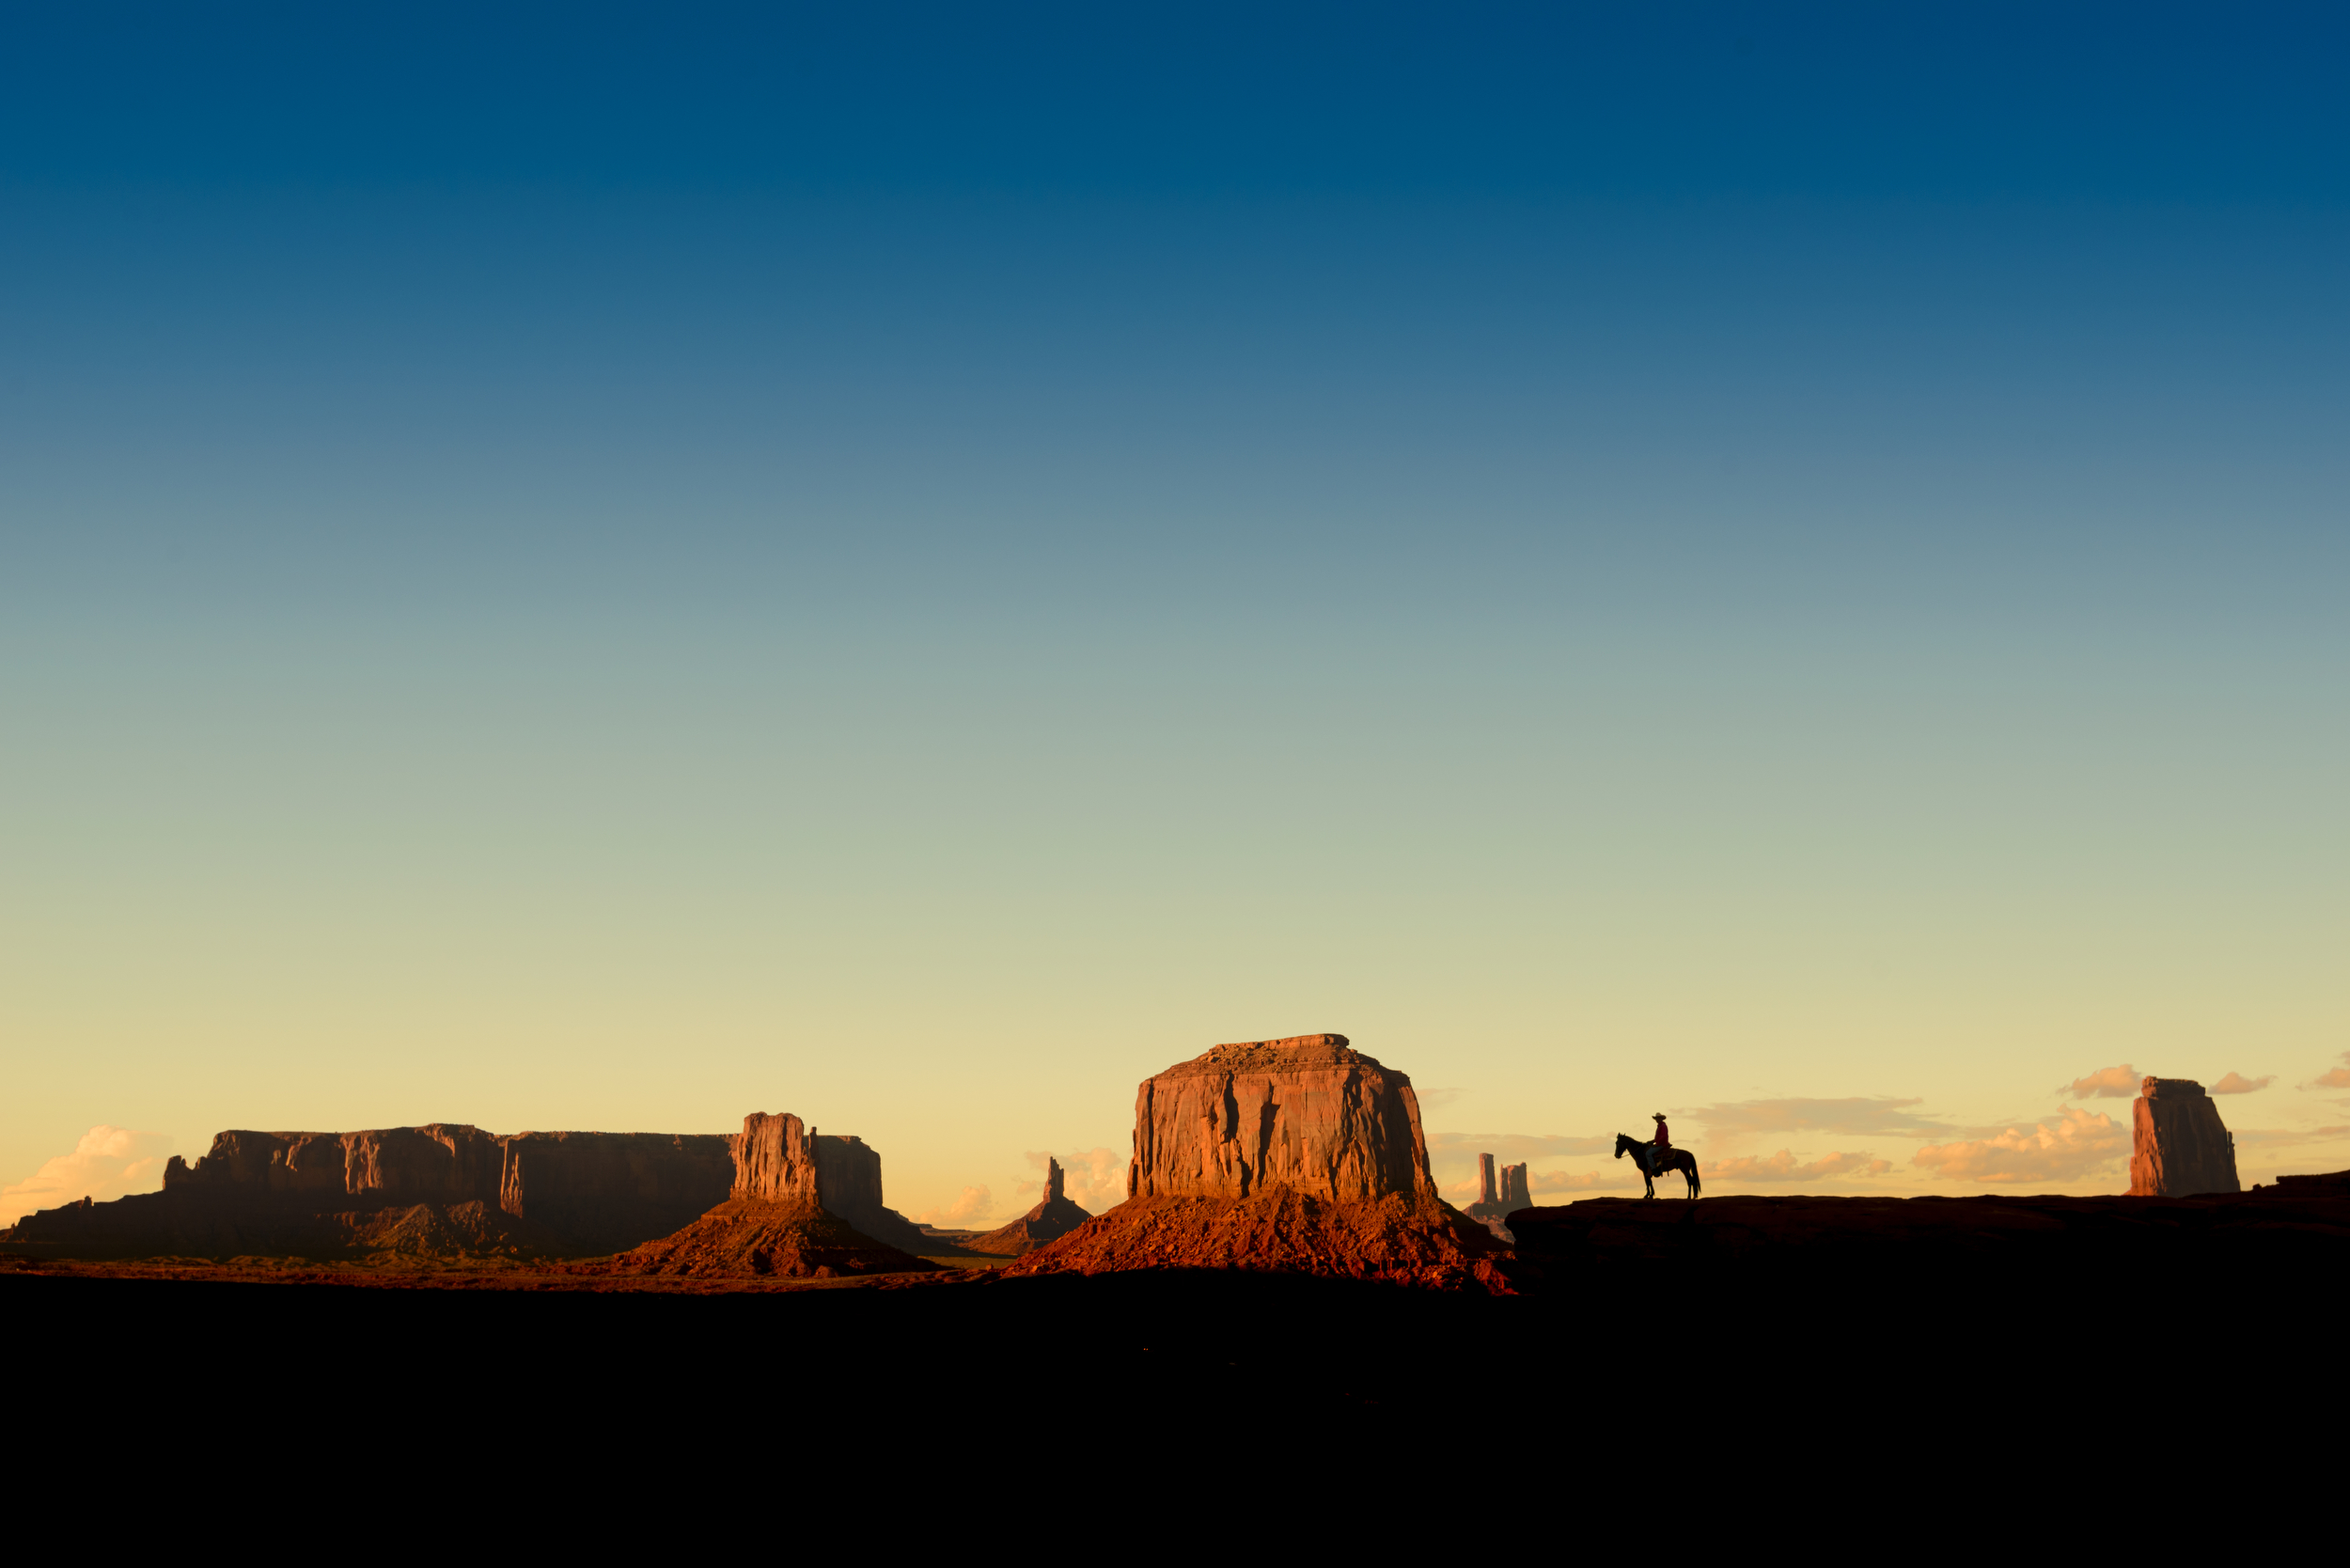 Monument Valley, John Ford's Point at sunset